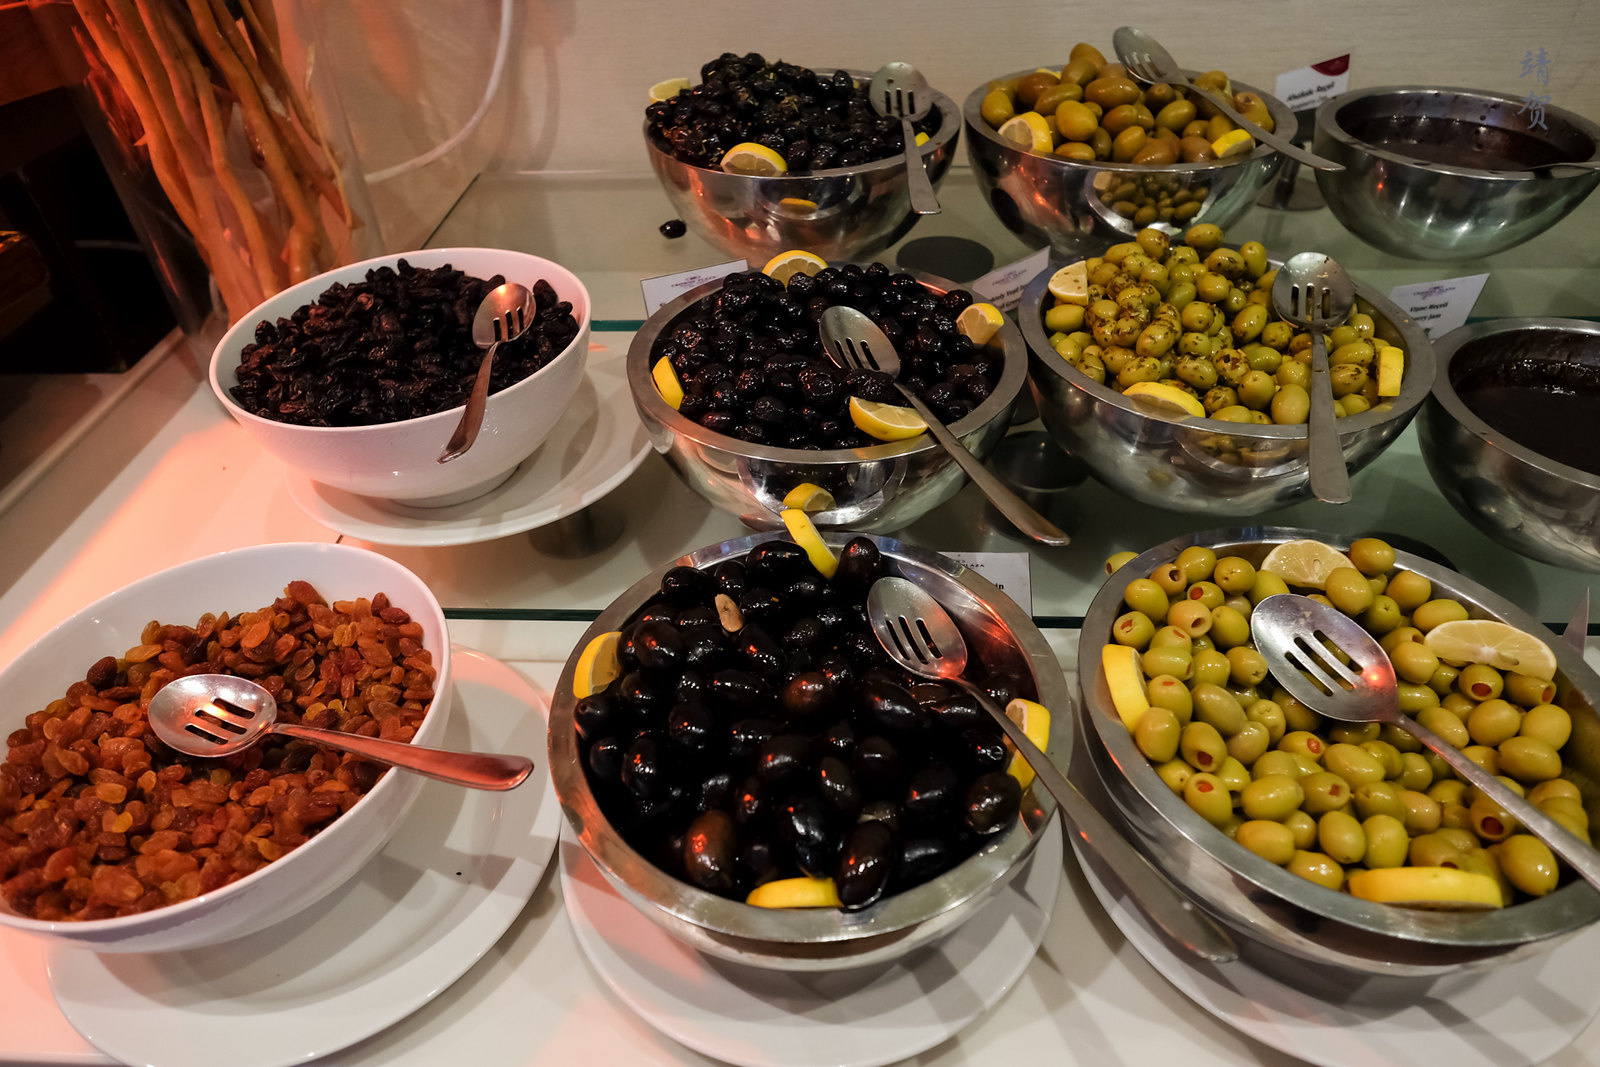 Olives and dried fruits